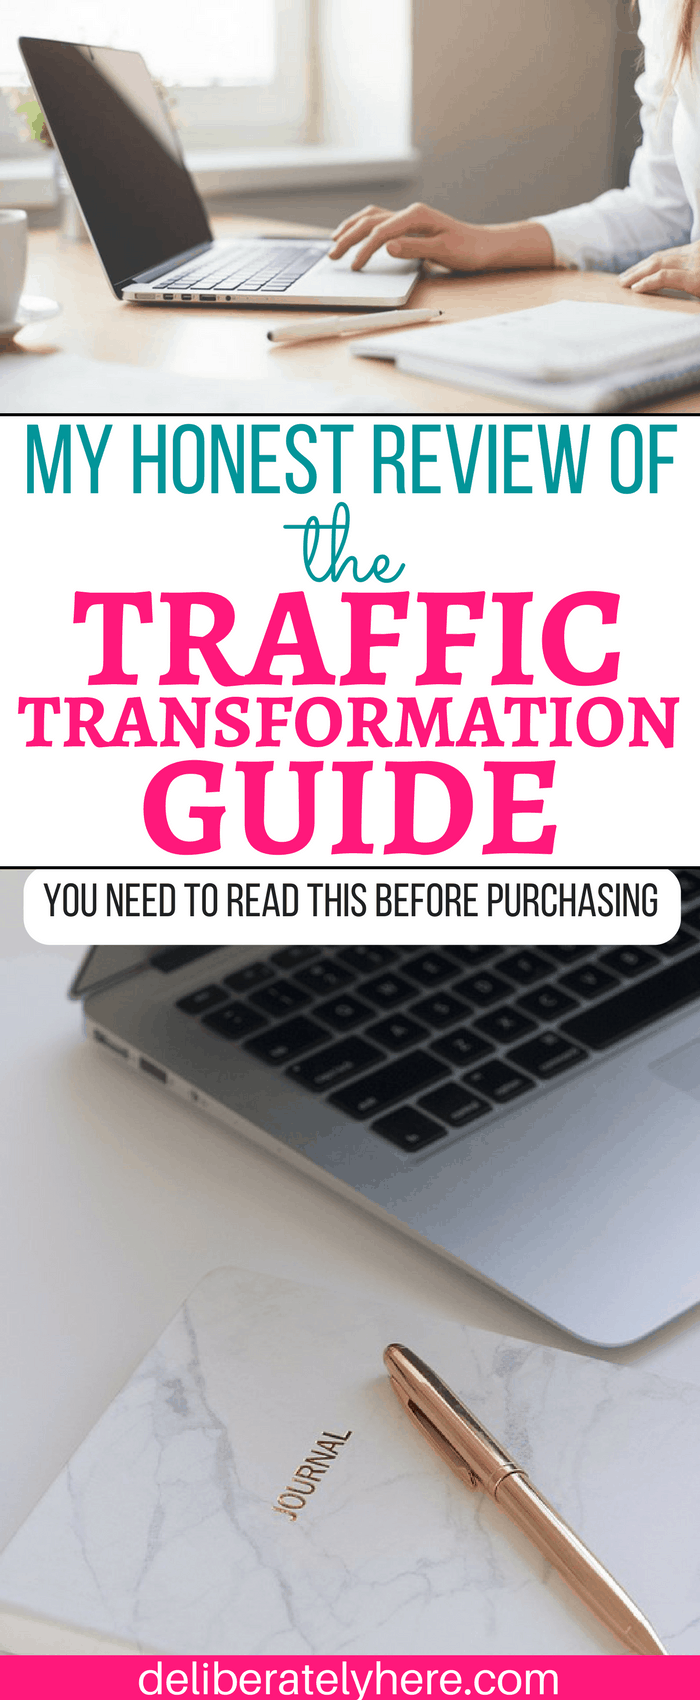 My Honest Review of the Traffic Transformation Guide by Lena Gott. YOU NEED TO READ THIS BEFORE PURCHASING!